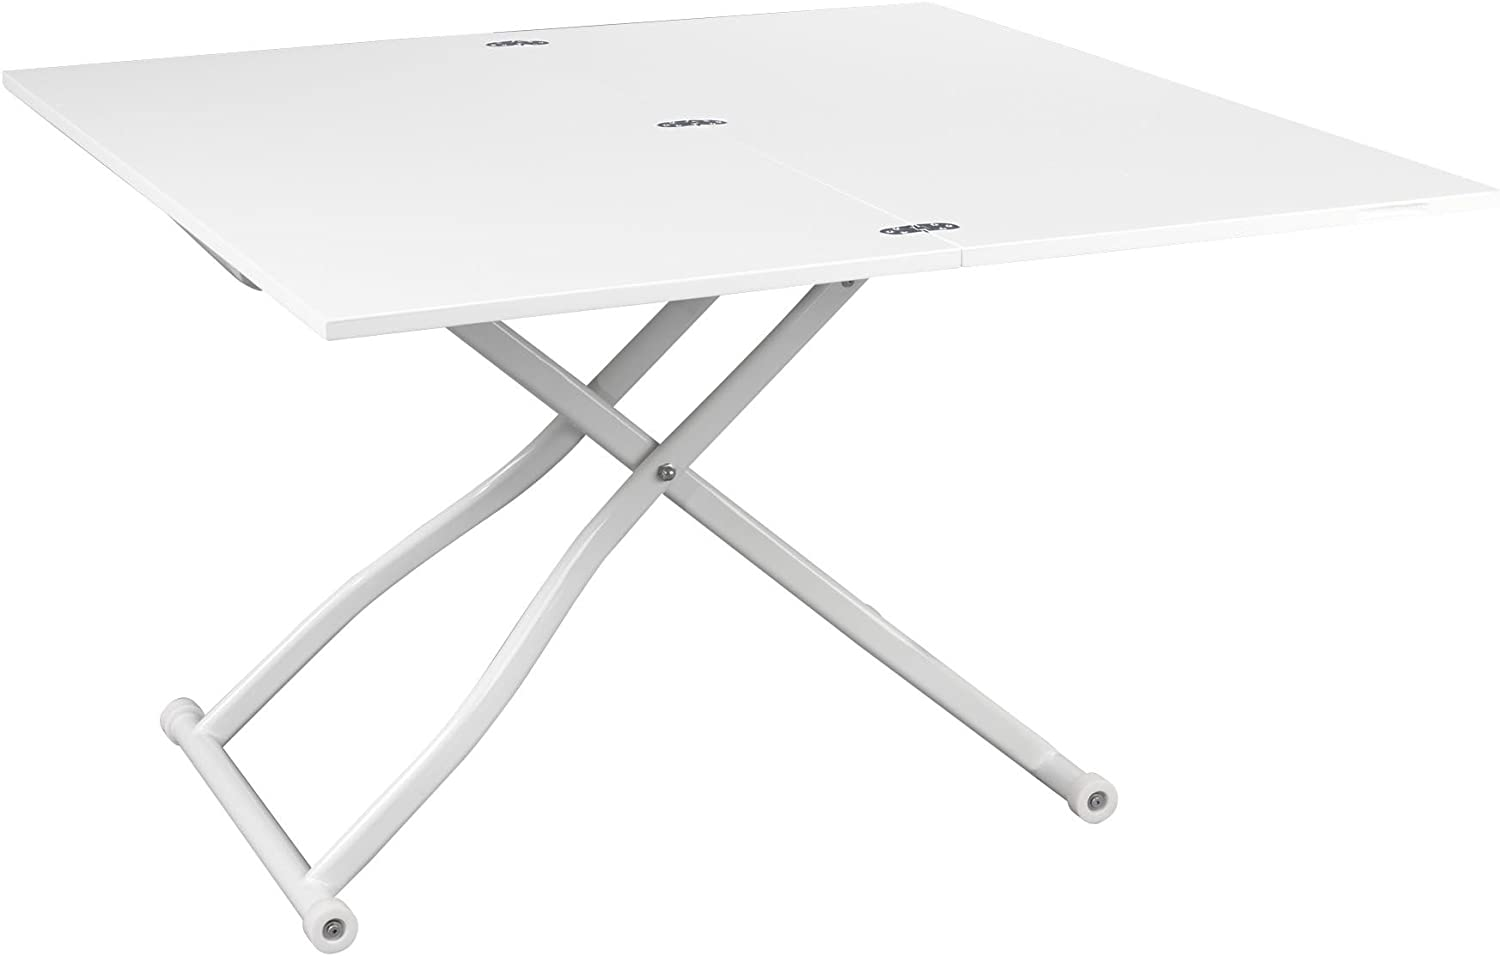 Alinéa Up Down 6 Table Basse Transformable Blanc 166.6x6.6x166.6